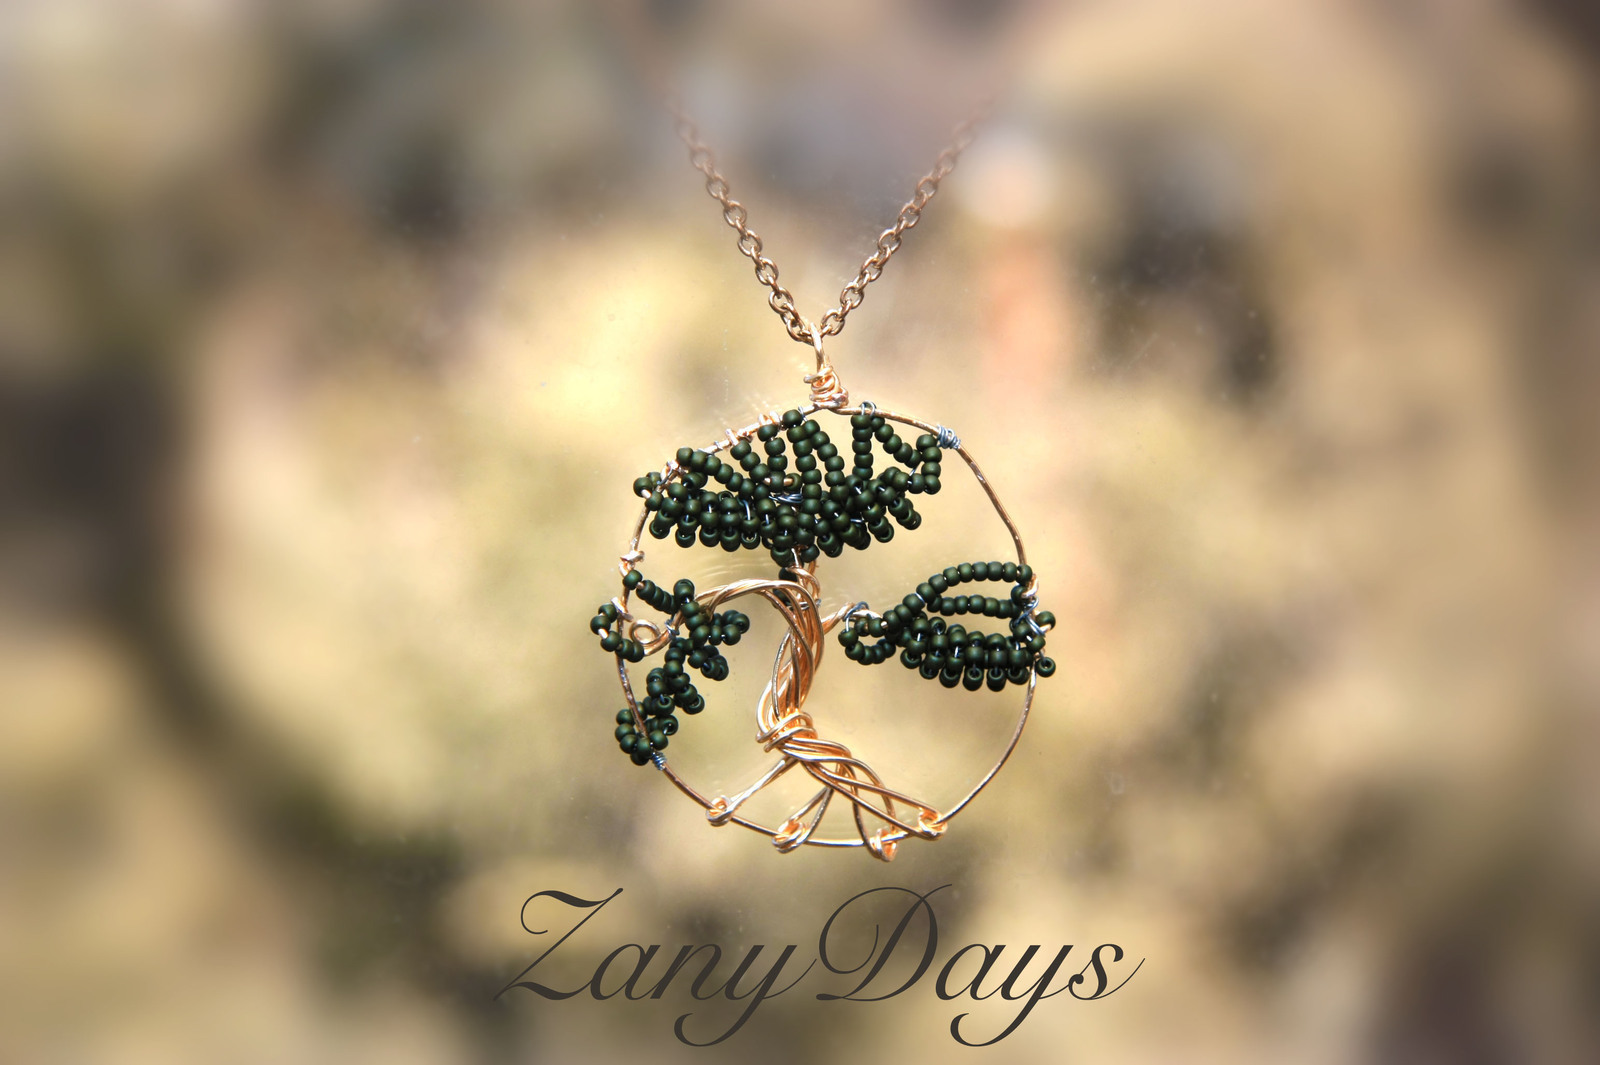 Beaded Bonsai Tree Pendant A Wire Pendant Creation By Zanydays